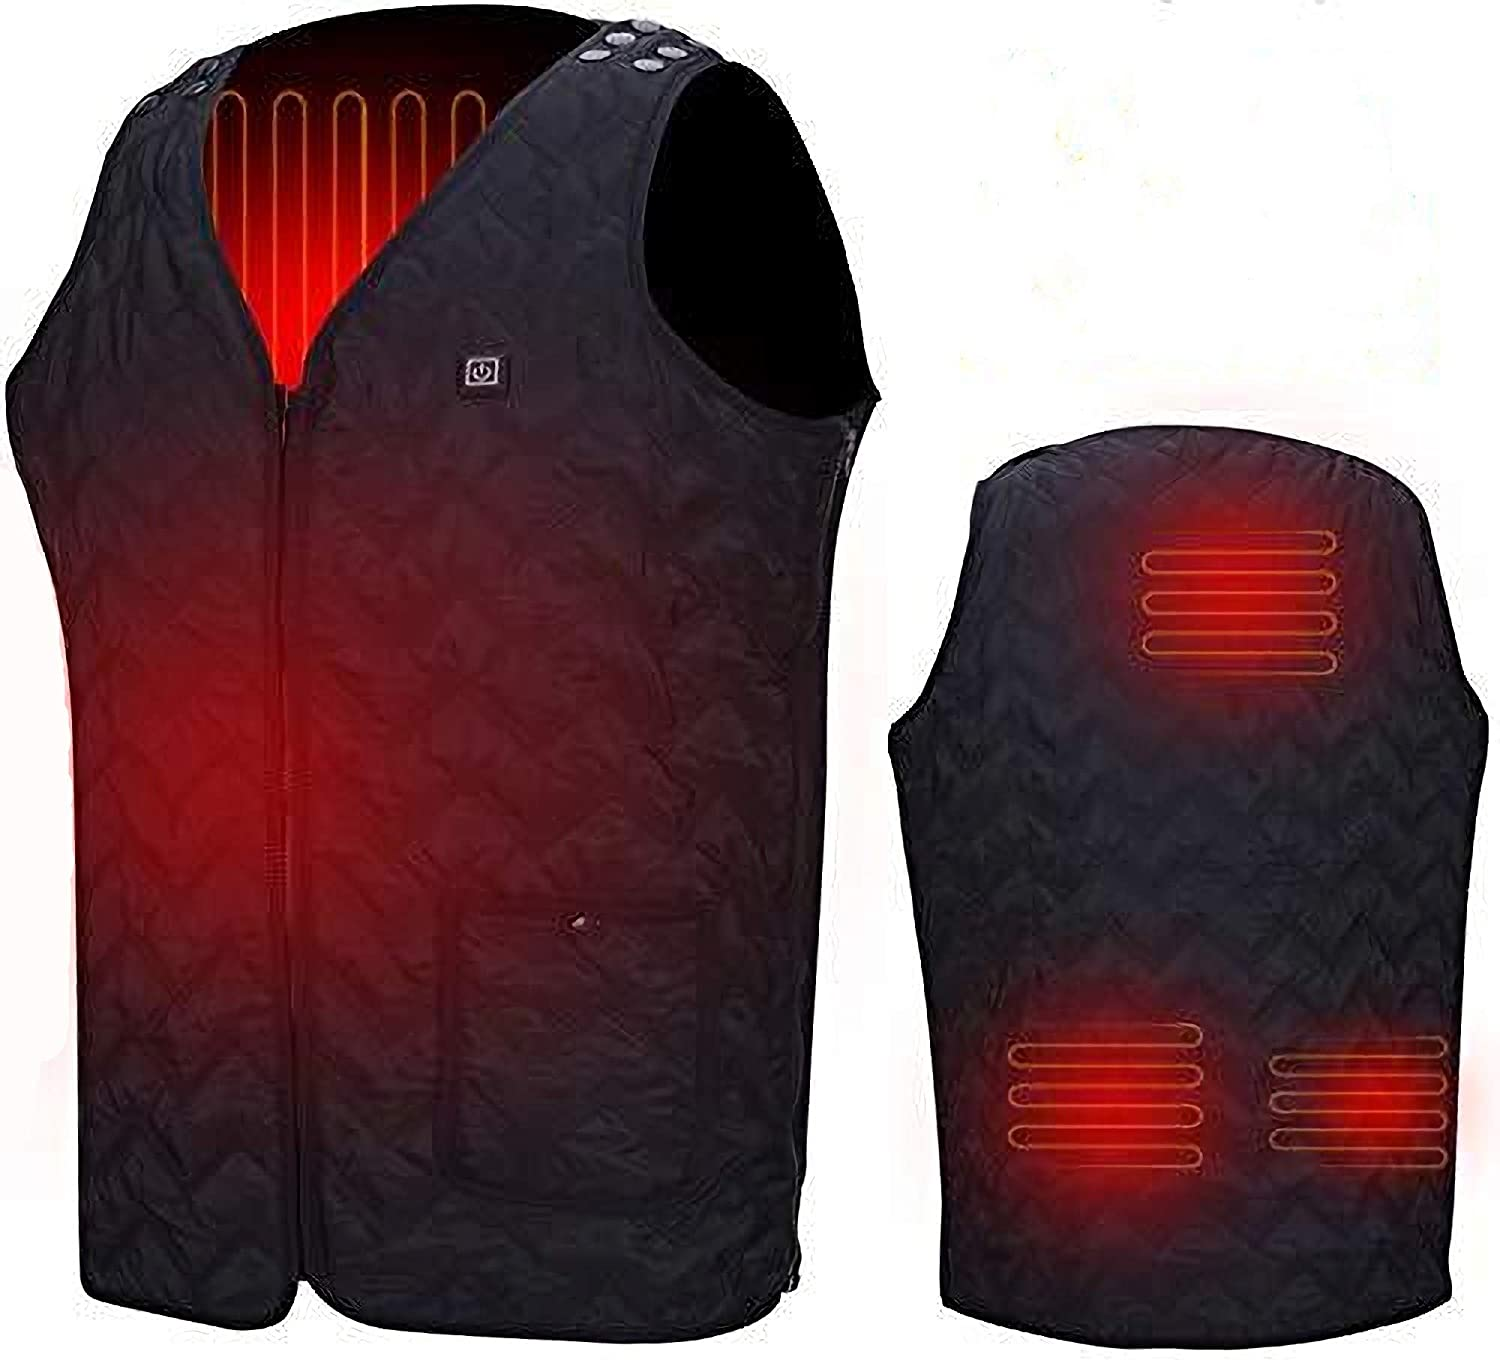 Unilove Heated Vest, Washable Size Adjustable USB Charging Heated Warm Vest for Outdoor Camping Hiking Golf Black